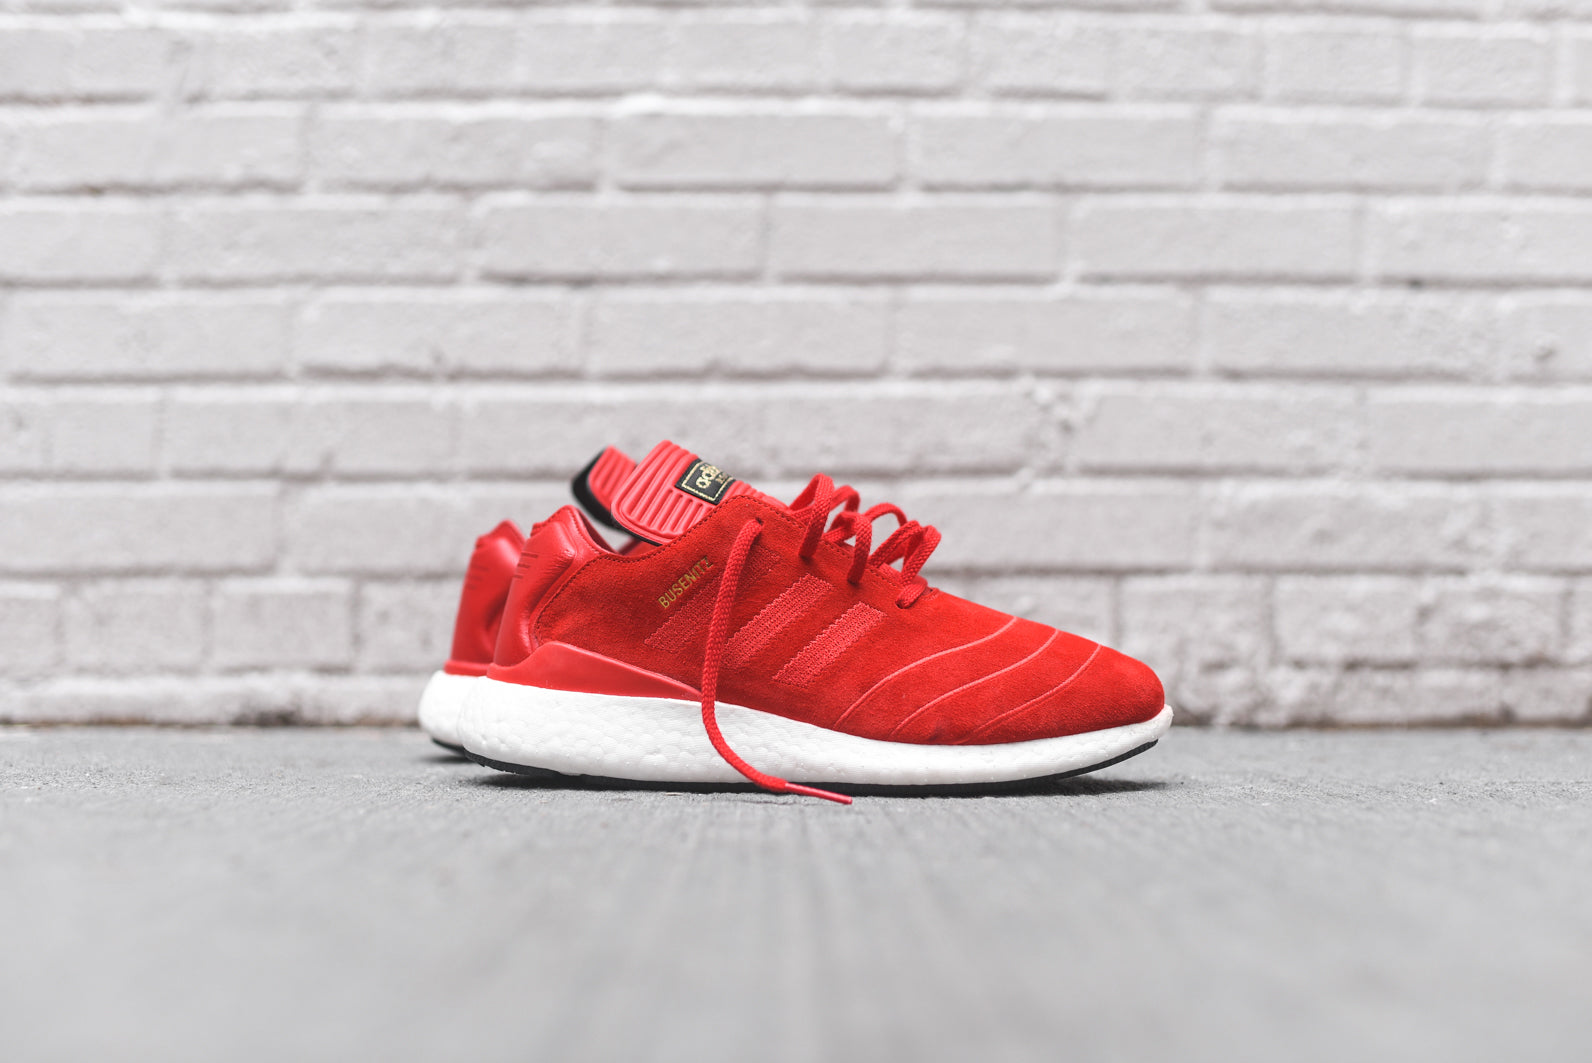 f71380cce adidas Busenitz Pure Boost - Scarlet Red. July 01